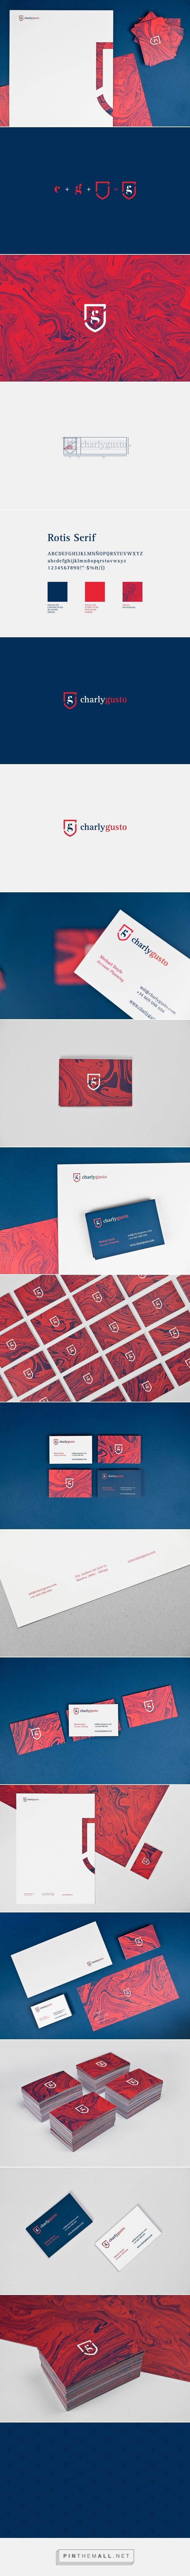 Charly Gusto on Behance - created via https://pinthemall.net